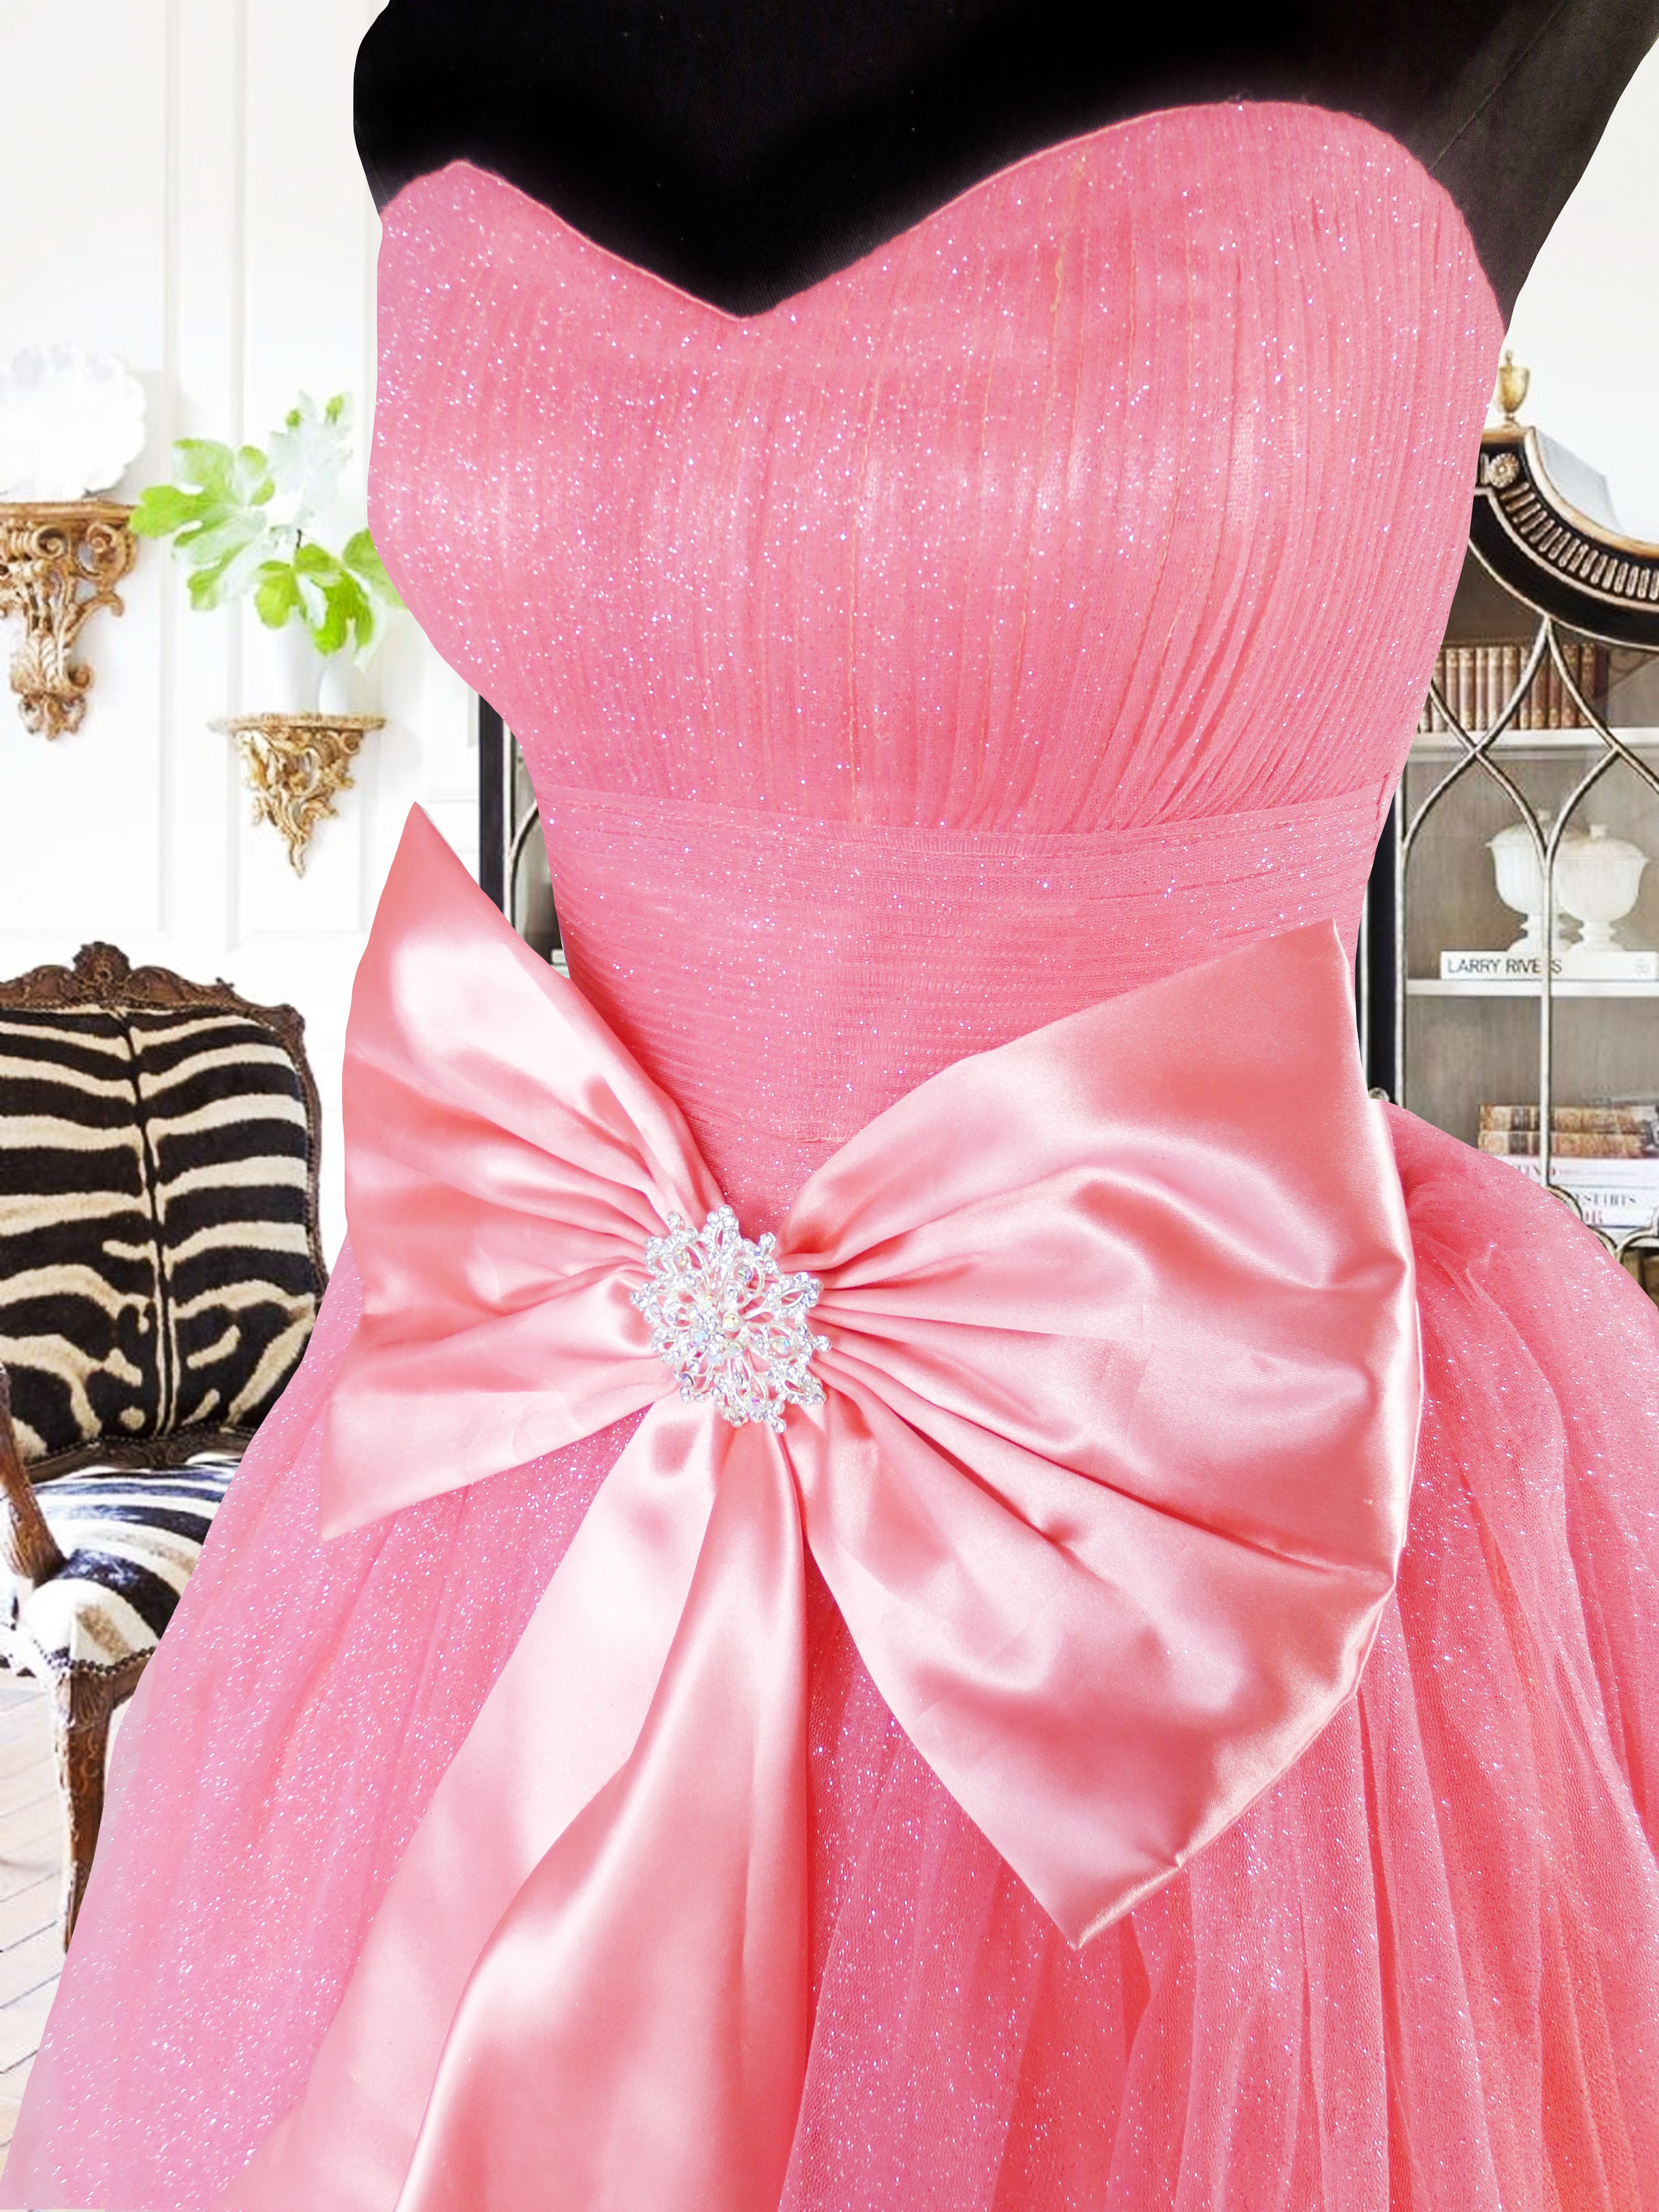 Tulle Ball Gown Debut Pomelo Pink With Bow Satin Ribbon